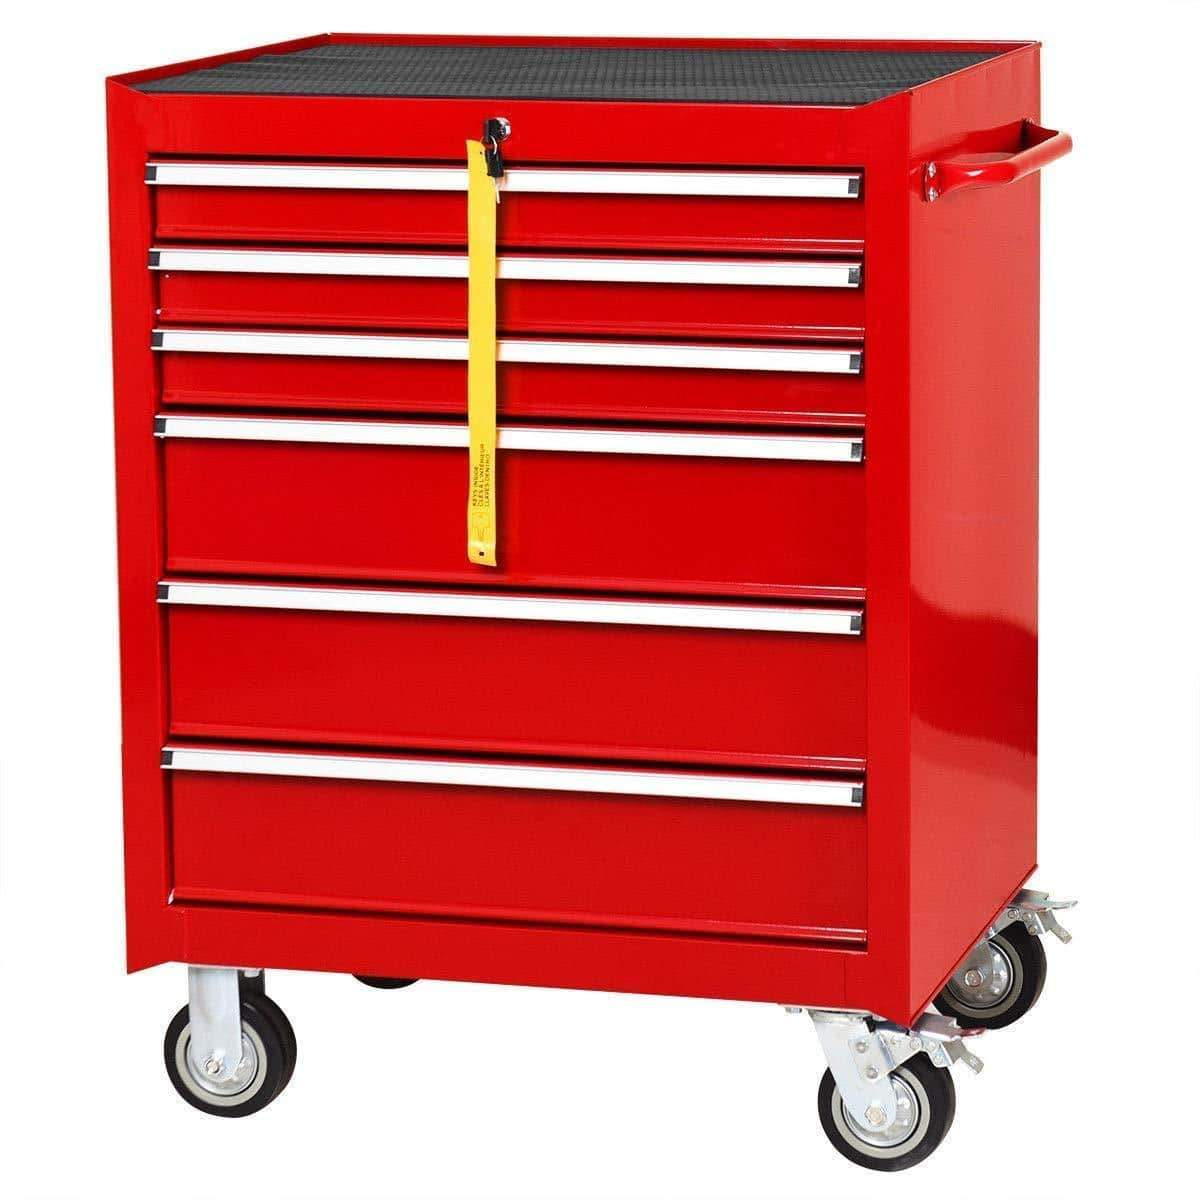 Budget friendly goplus 30 x 24 5 tool box cart portable 6 drawer rolling storage cabinet multi purpose tool chest steel garage toolbox organizer with wheels and keyed locking system classic red